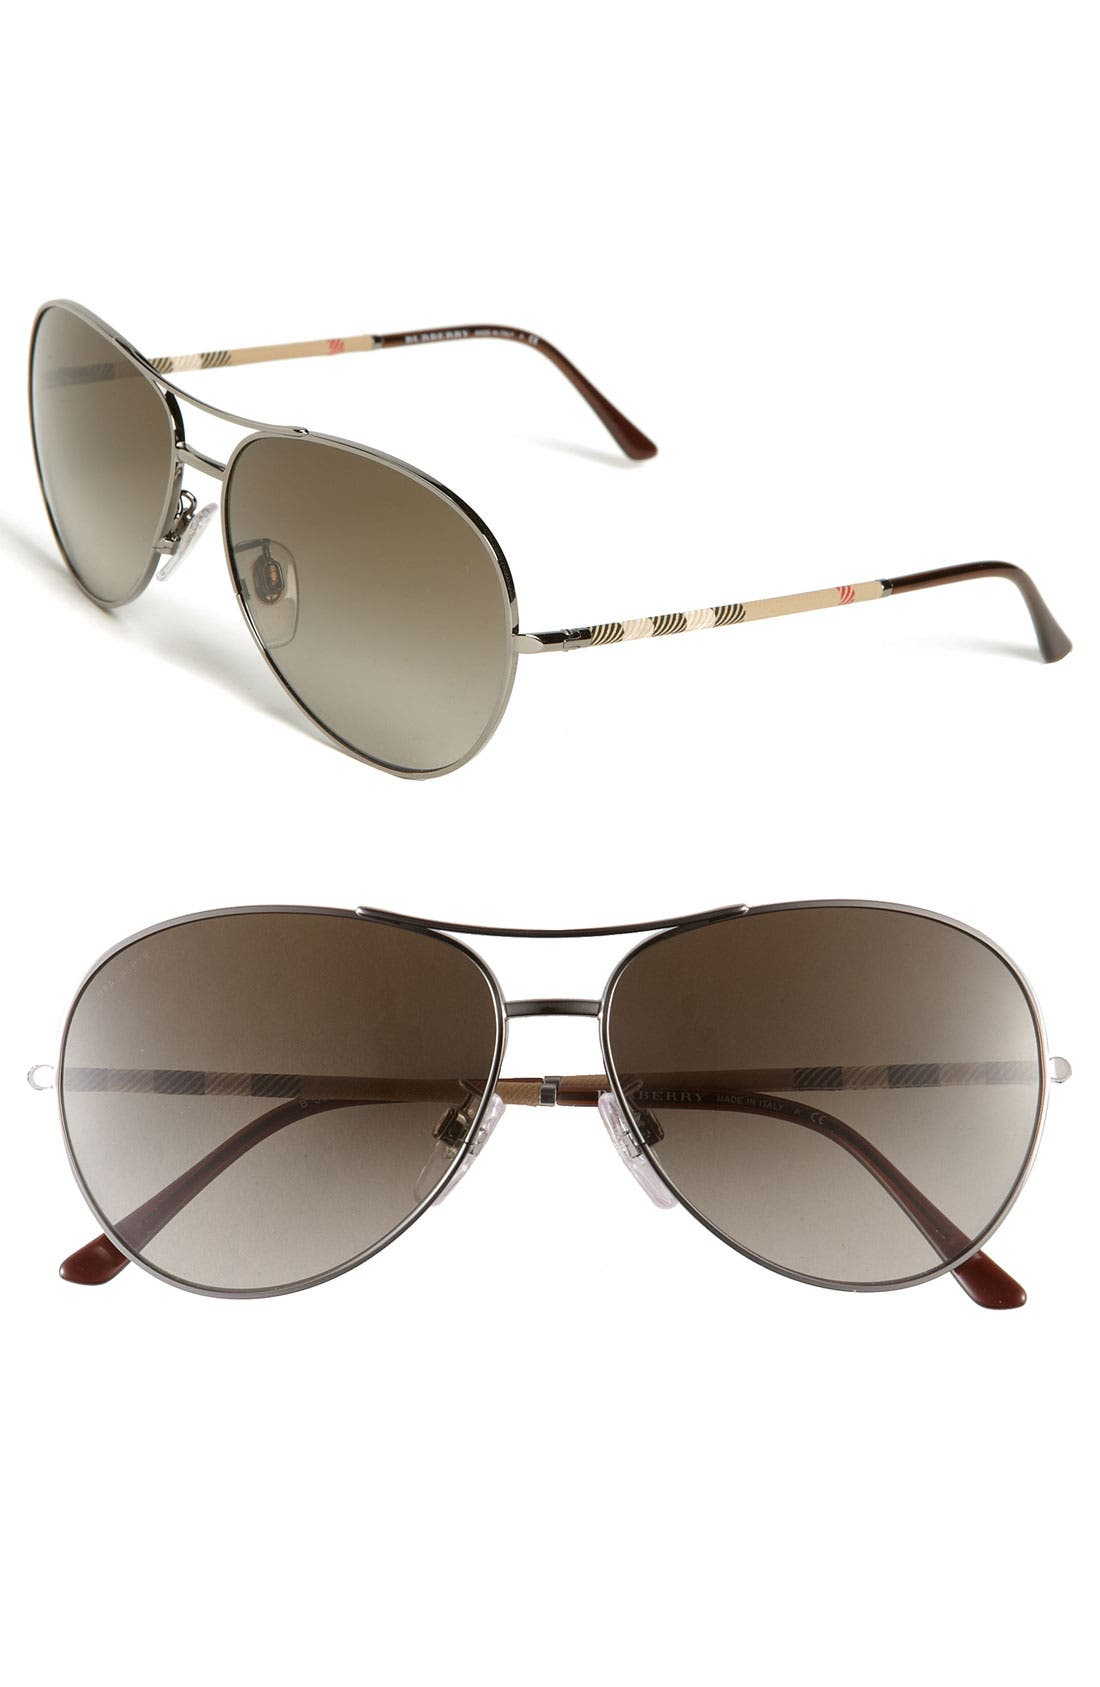 Alternate Image 1 Selected - Burberry Metal Aviator Sunglasses